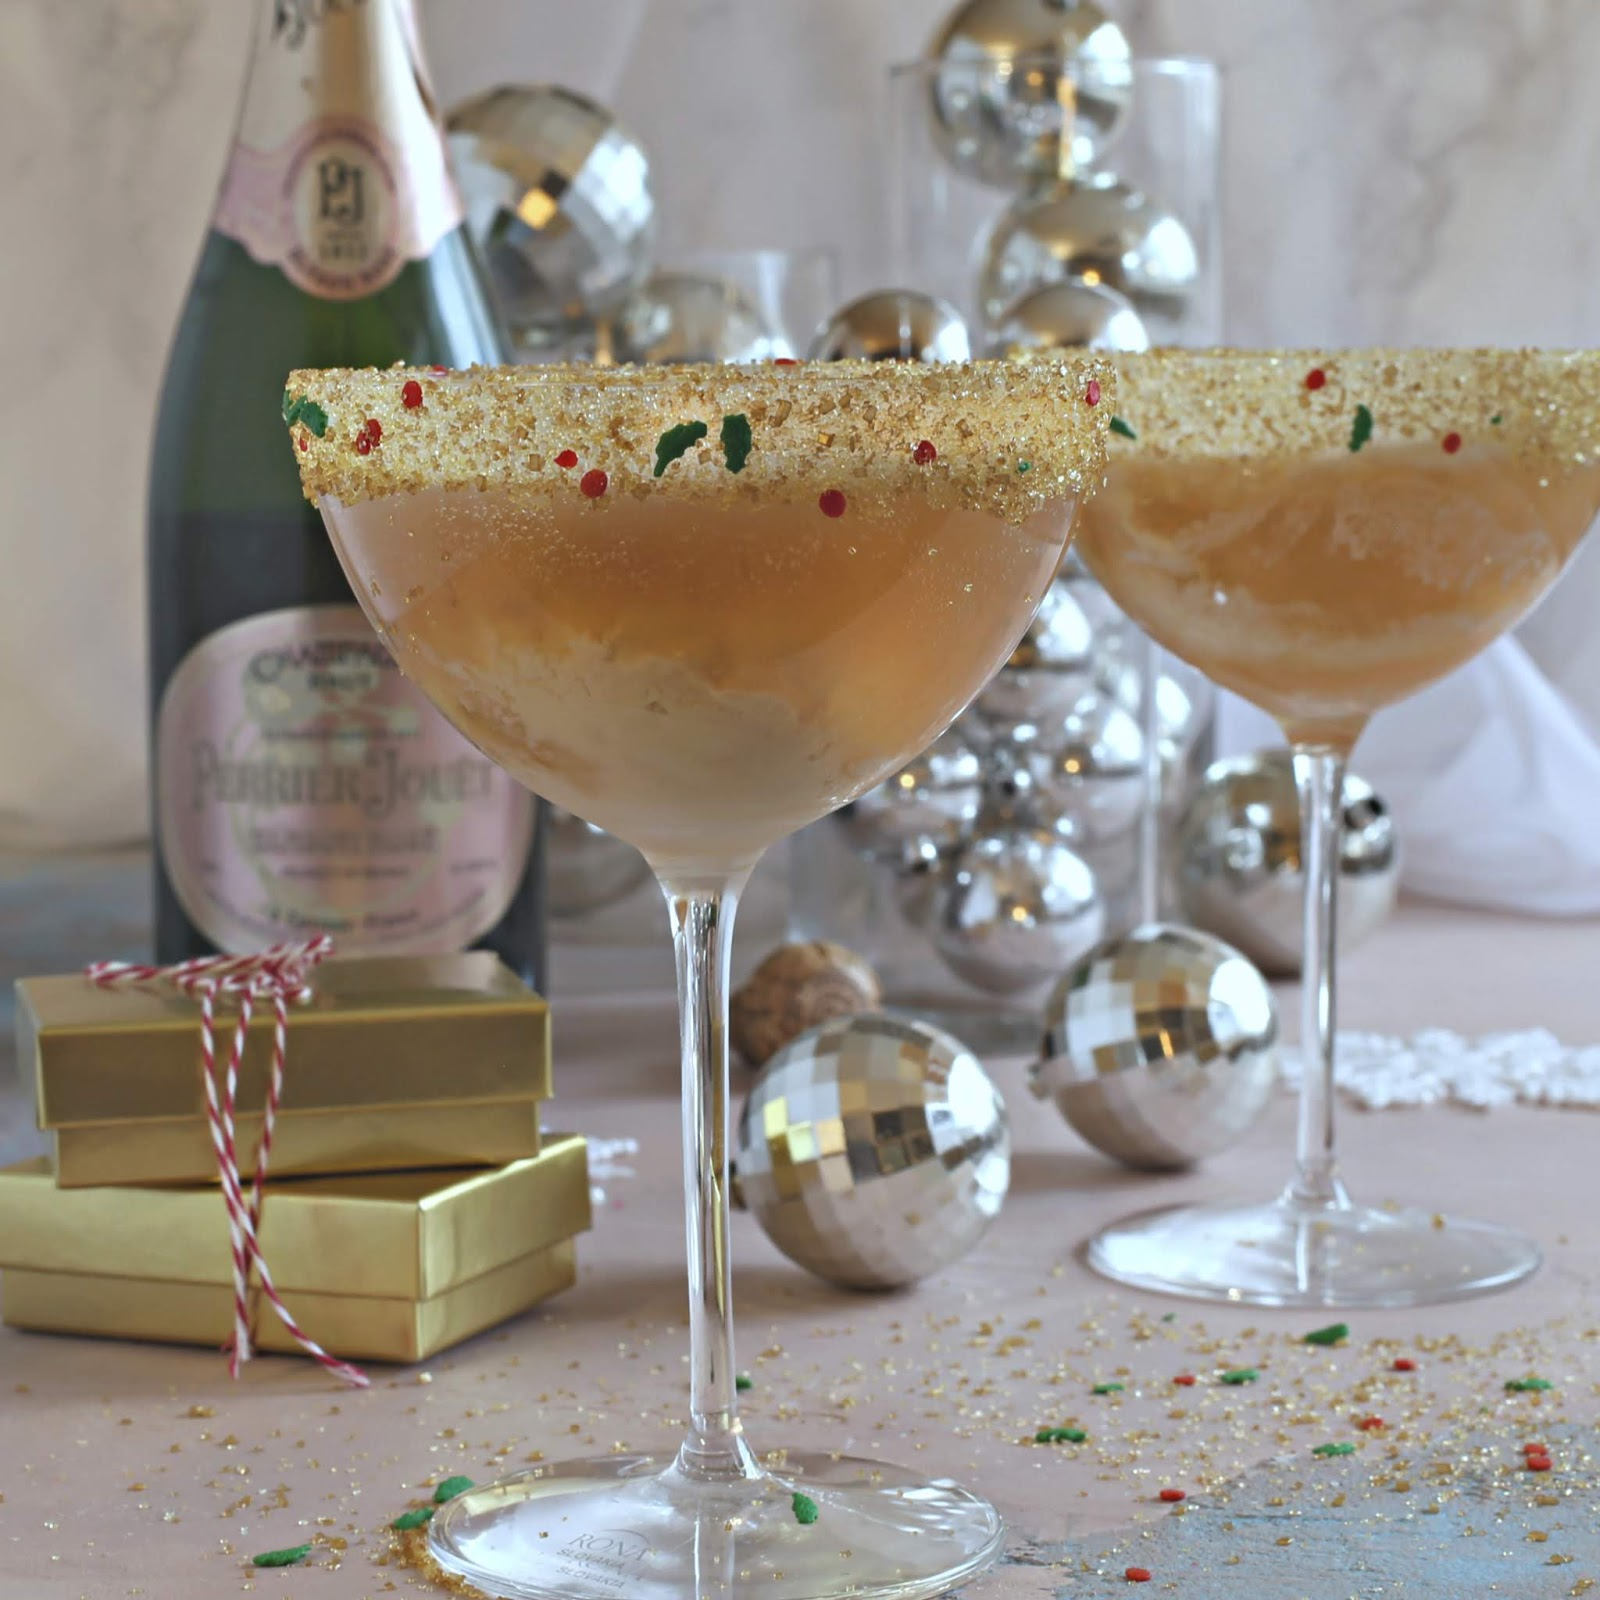 Champagne cocktail flavored with elderflower and vanilla ice cream